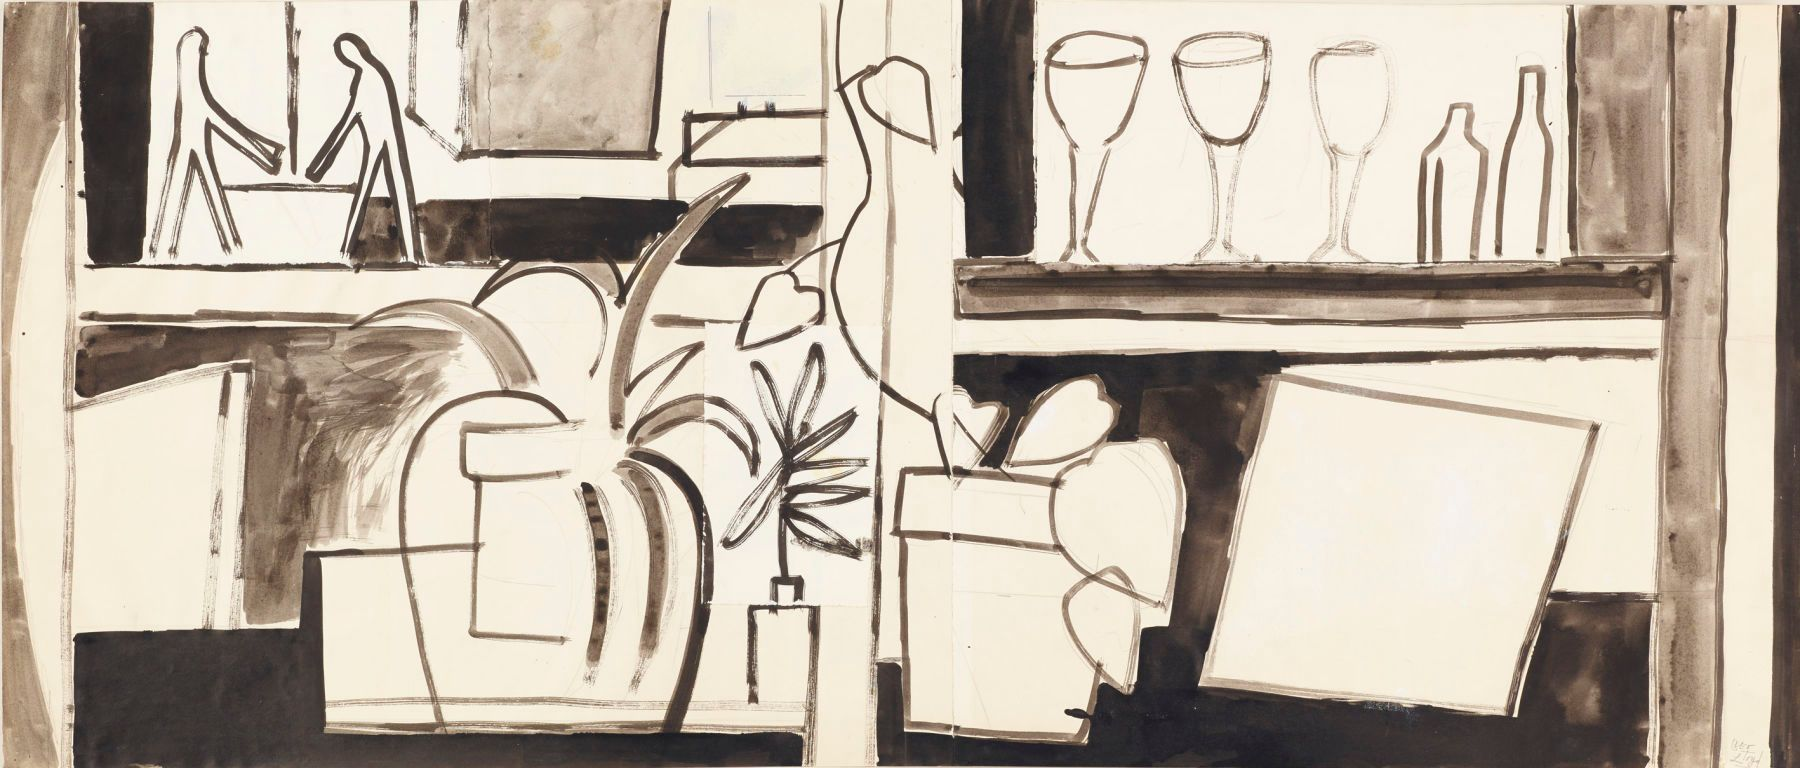 "SHATTUCK AVENUE STILL LIFE   1974  Berkeley  19 x 45""     , ink on paper"